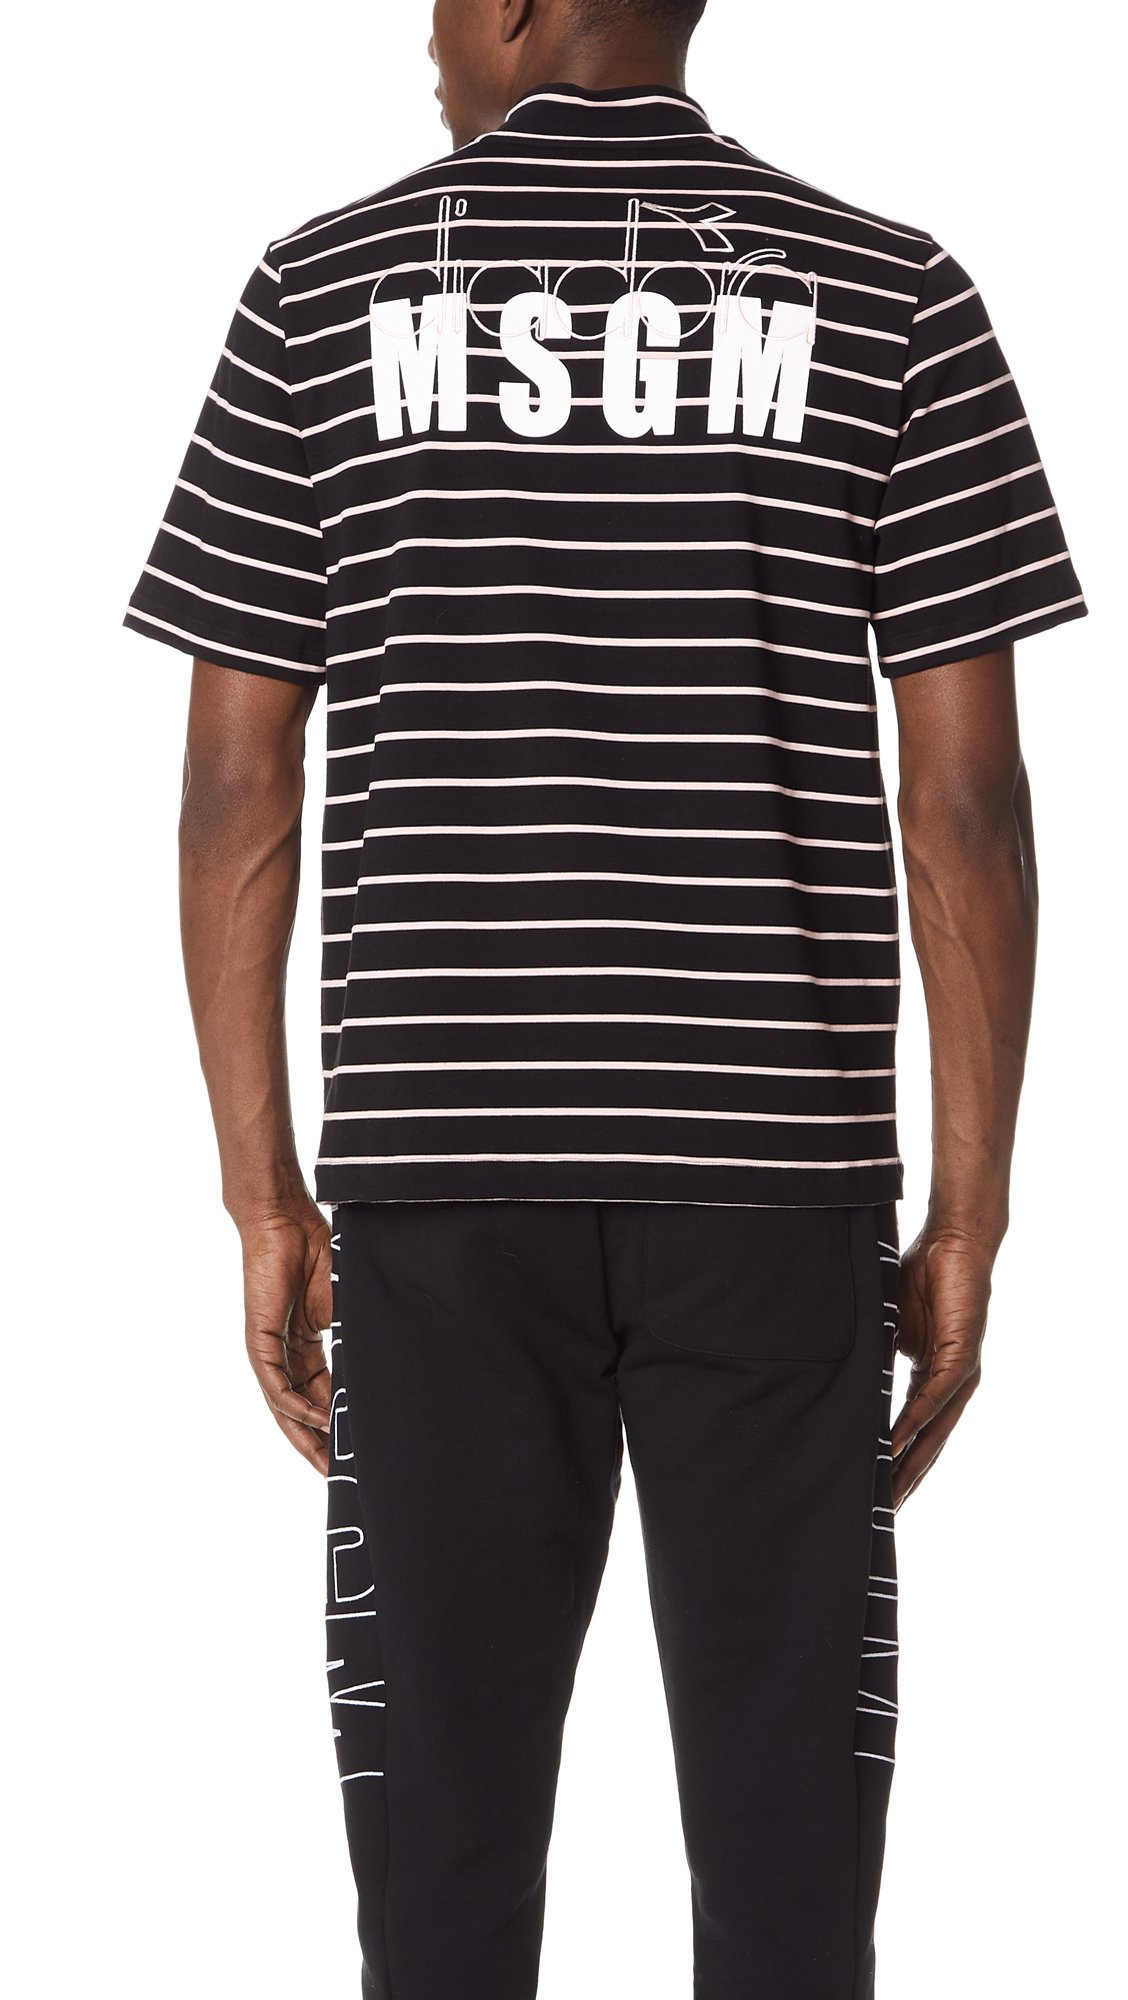 MSGM Men's Diadora Shirt, Black, 44